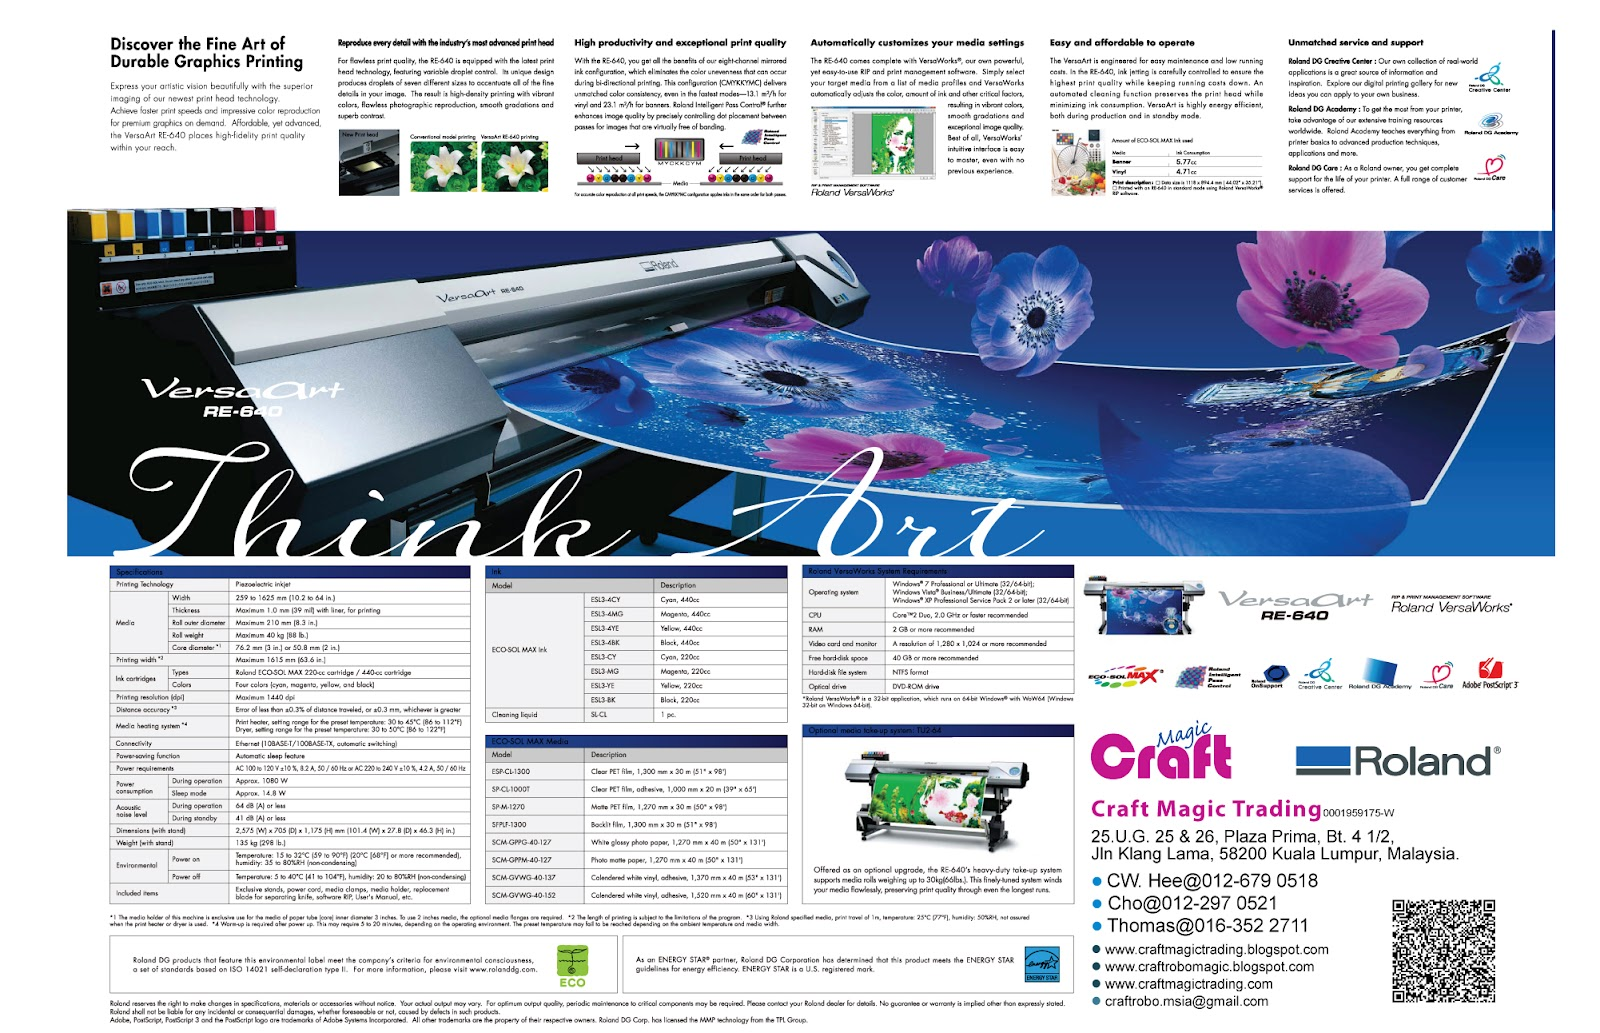 Craft Magic Global Marketing: VersaArt RE-640 Large Format Inkjet